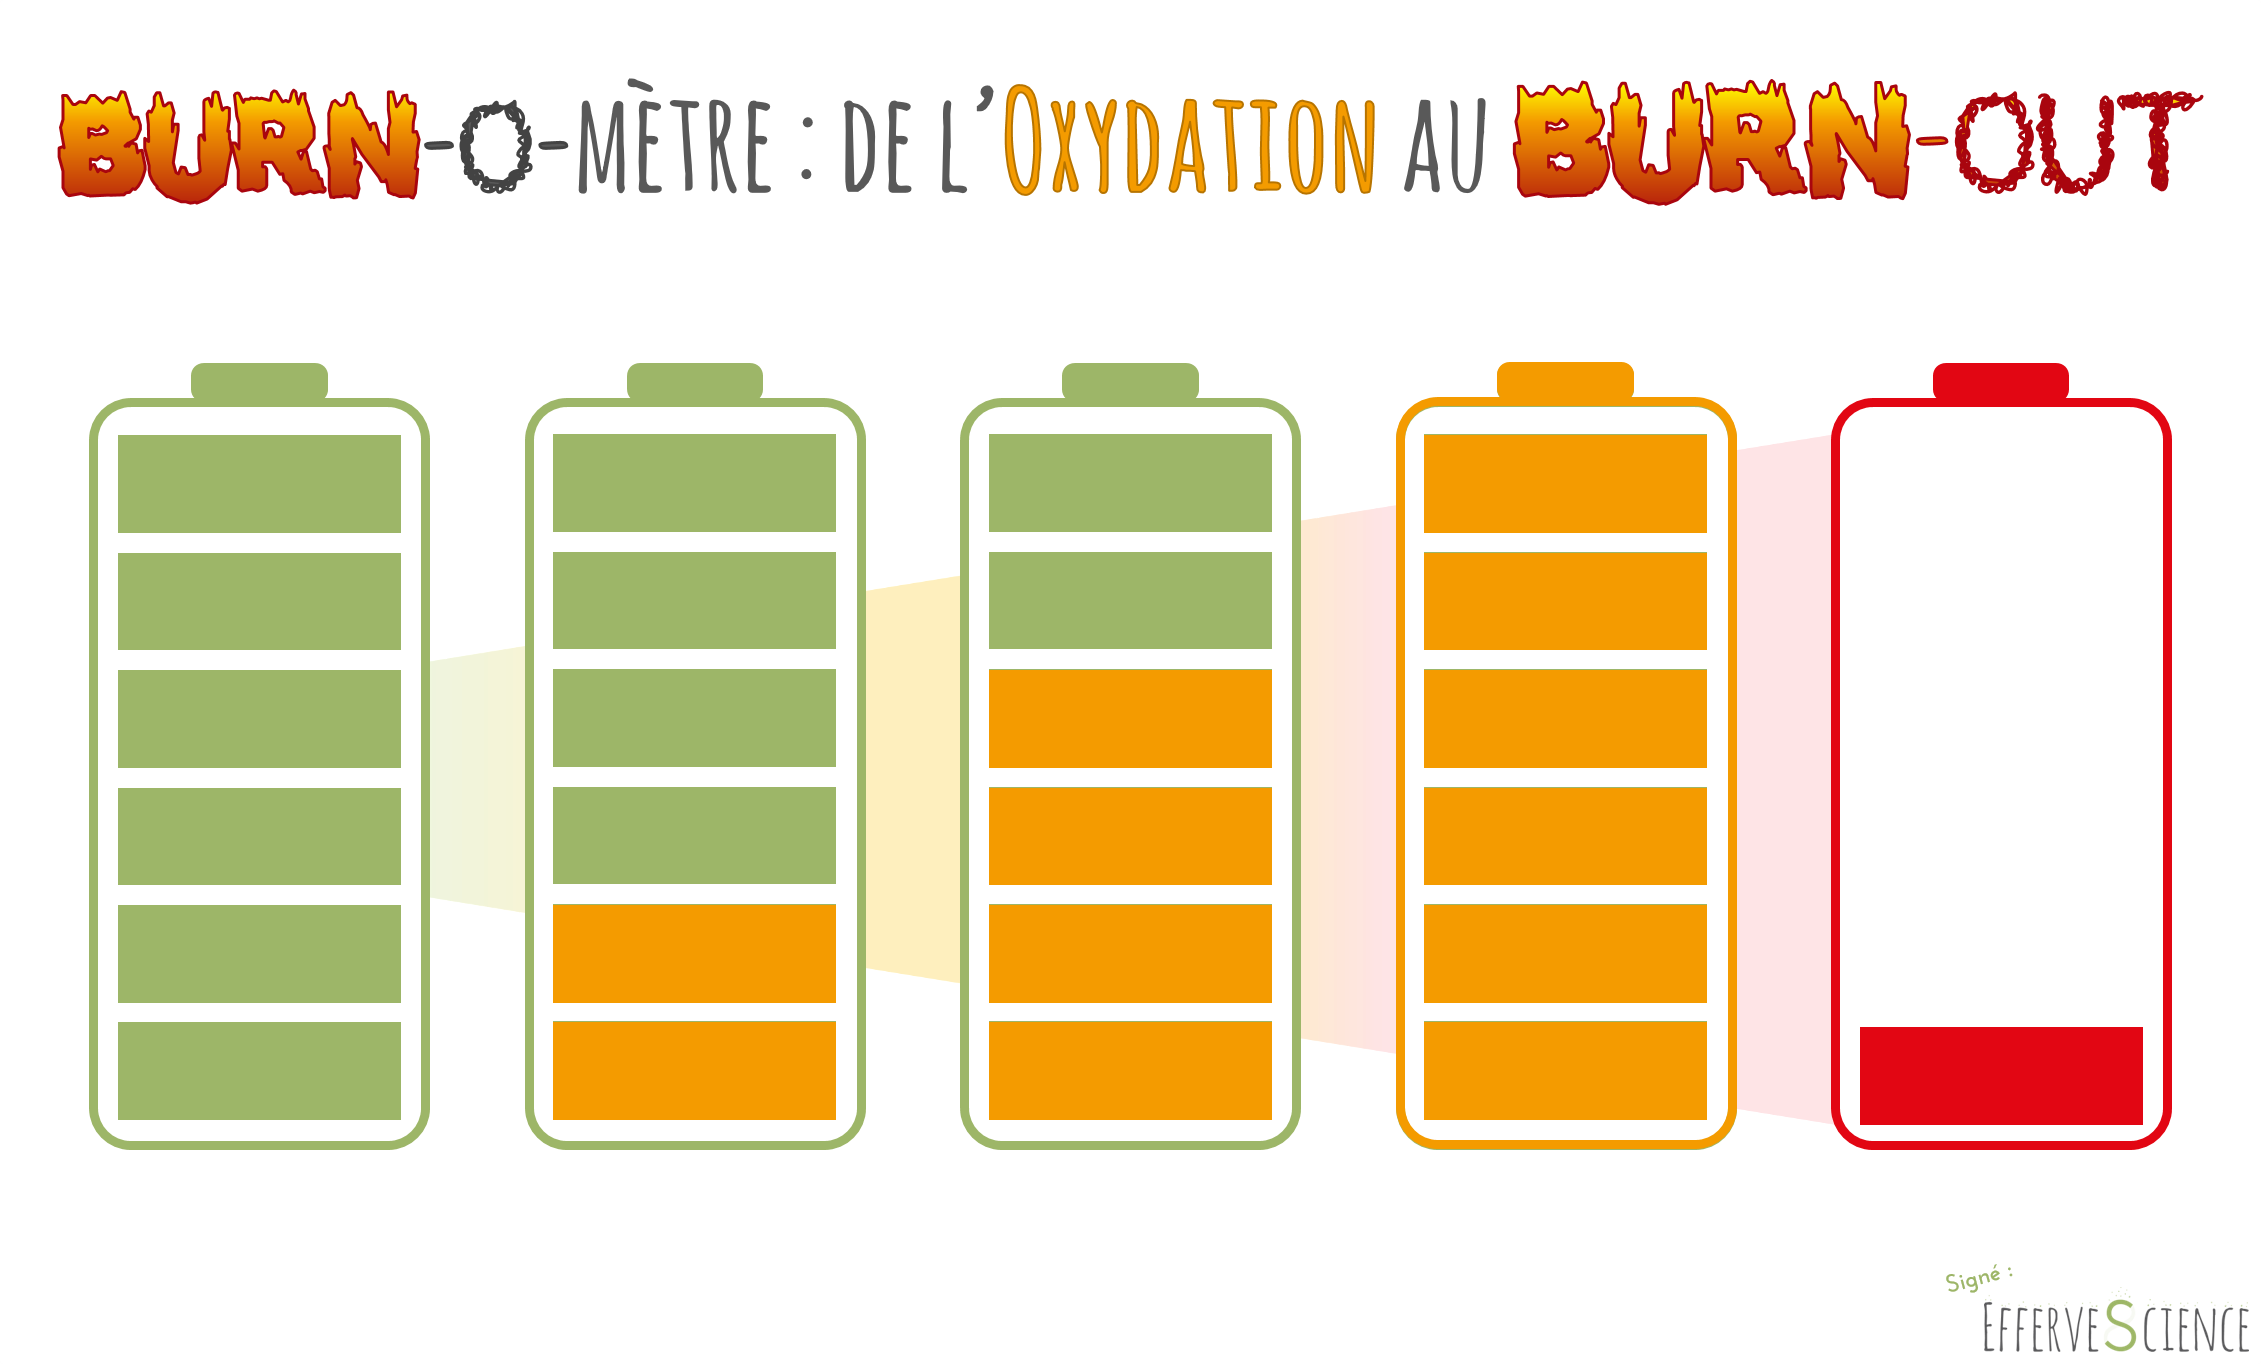 BurnOmetre, de l'oxydation au burnOut